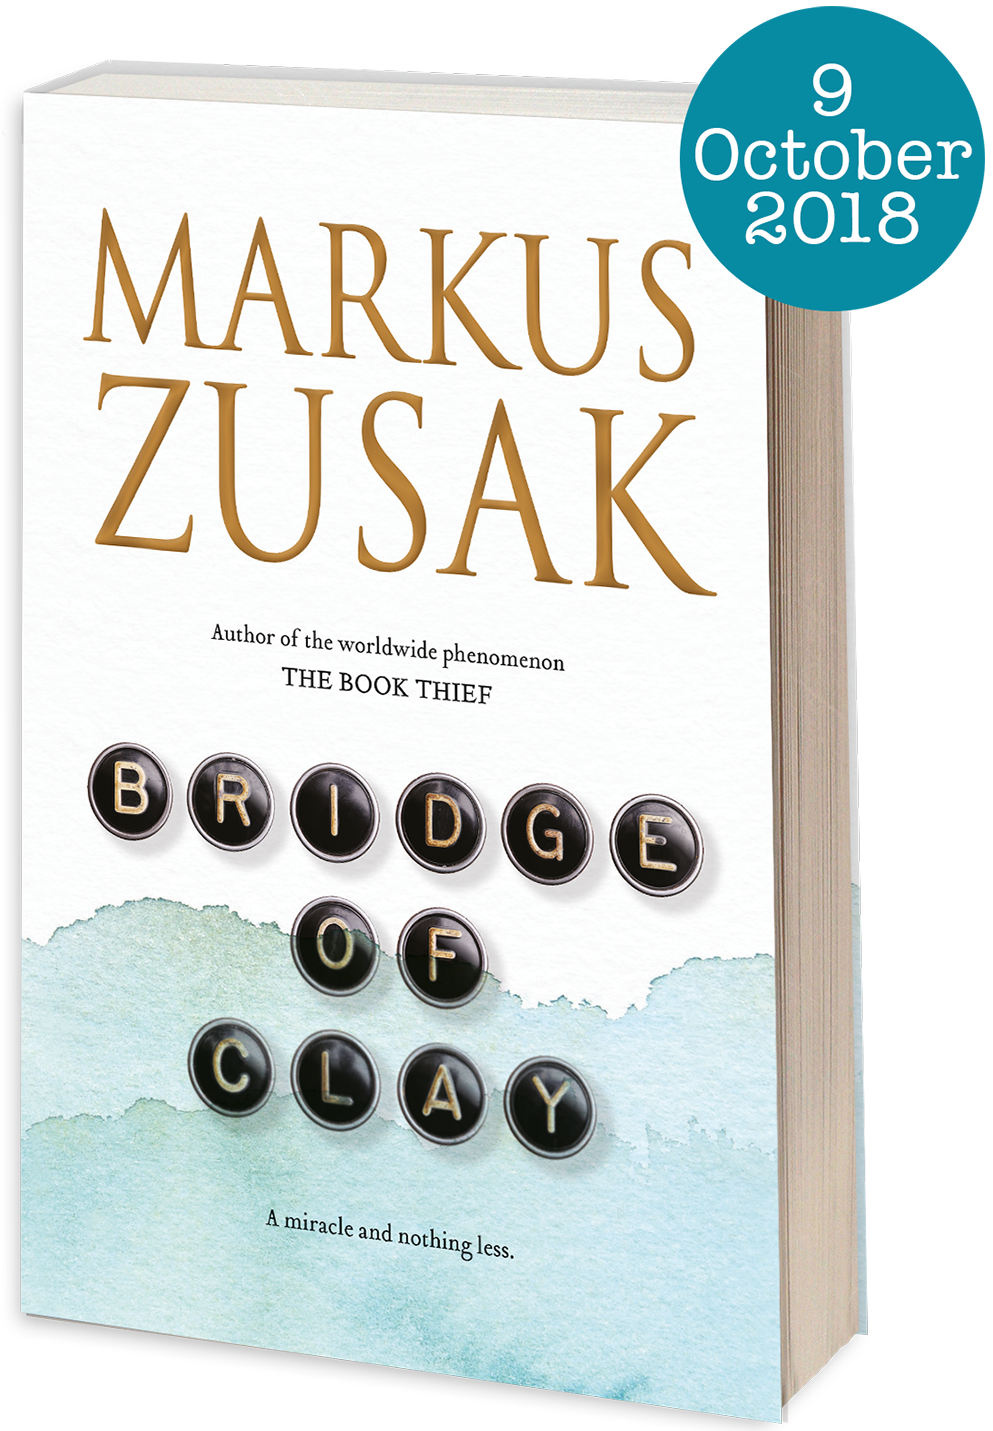 New book from Markus Zusak - Bridge of Clay - Hardcover - 9781743534816